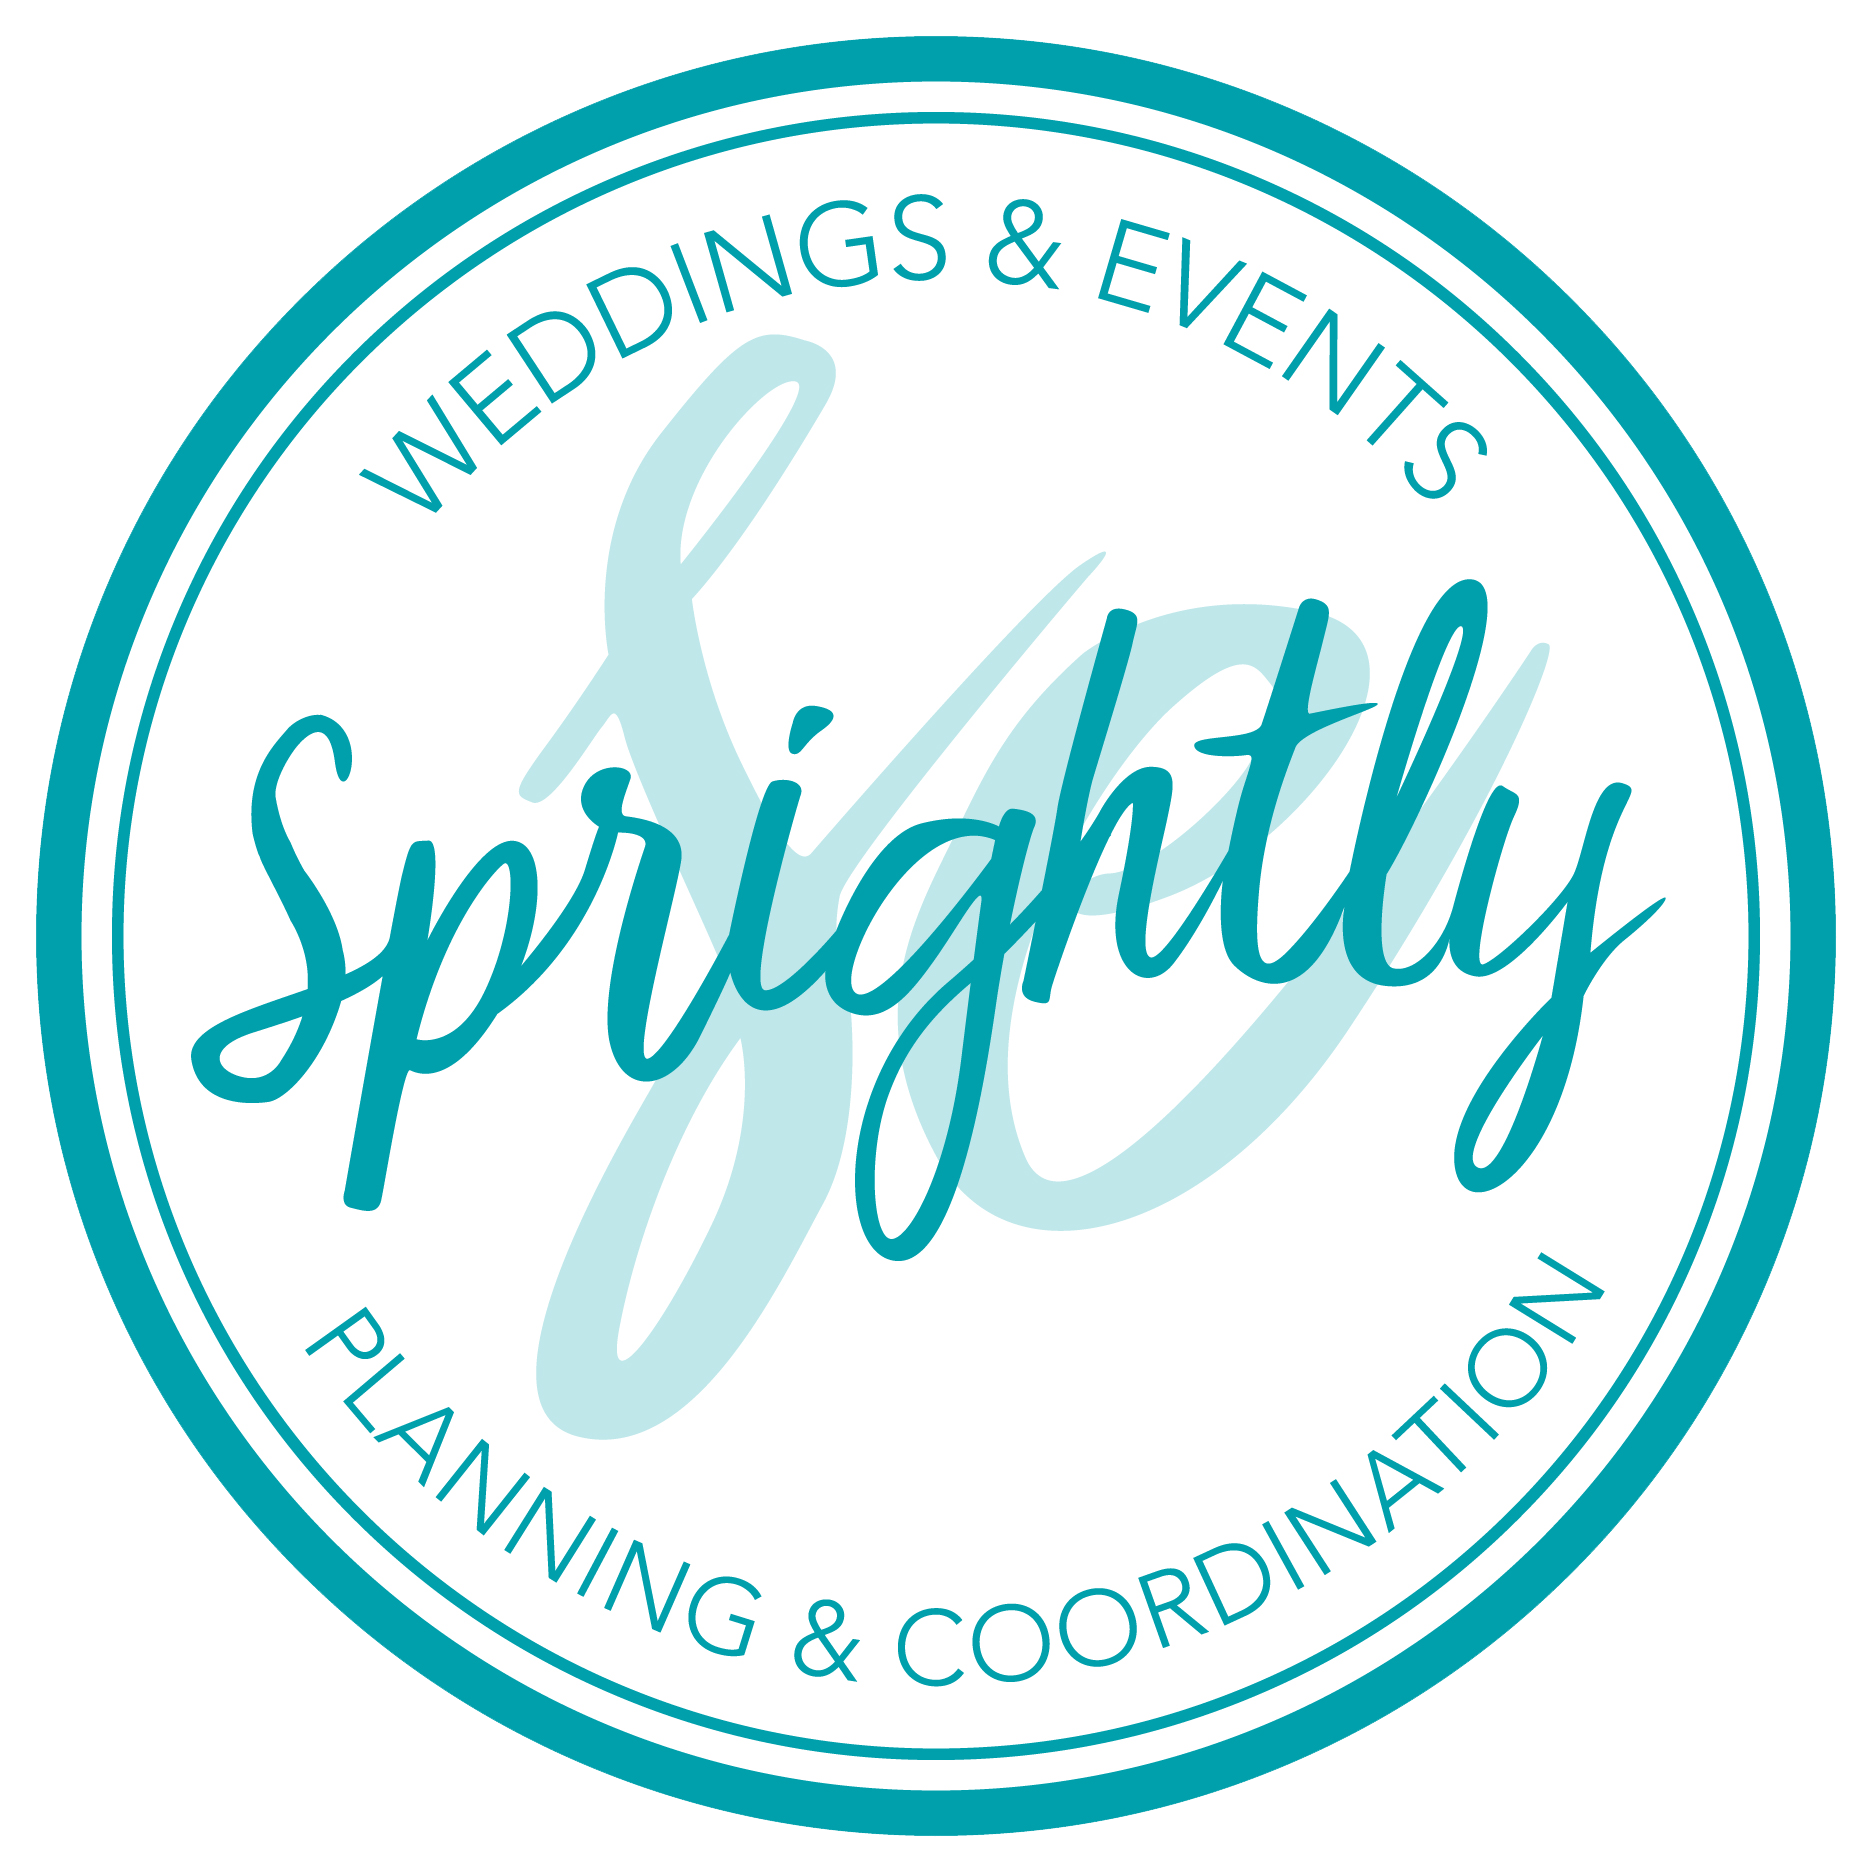 Sprightly Events